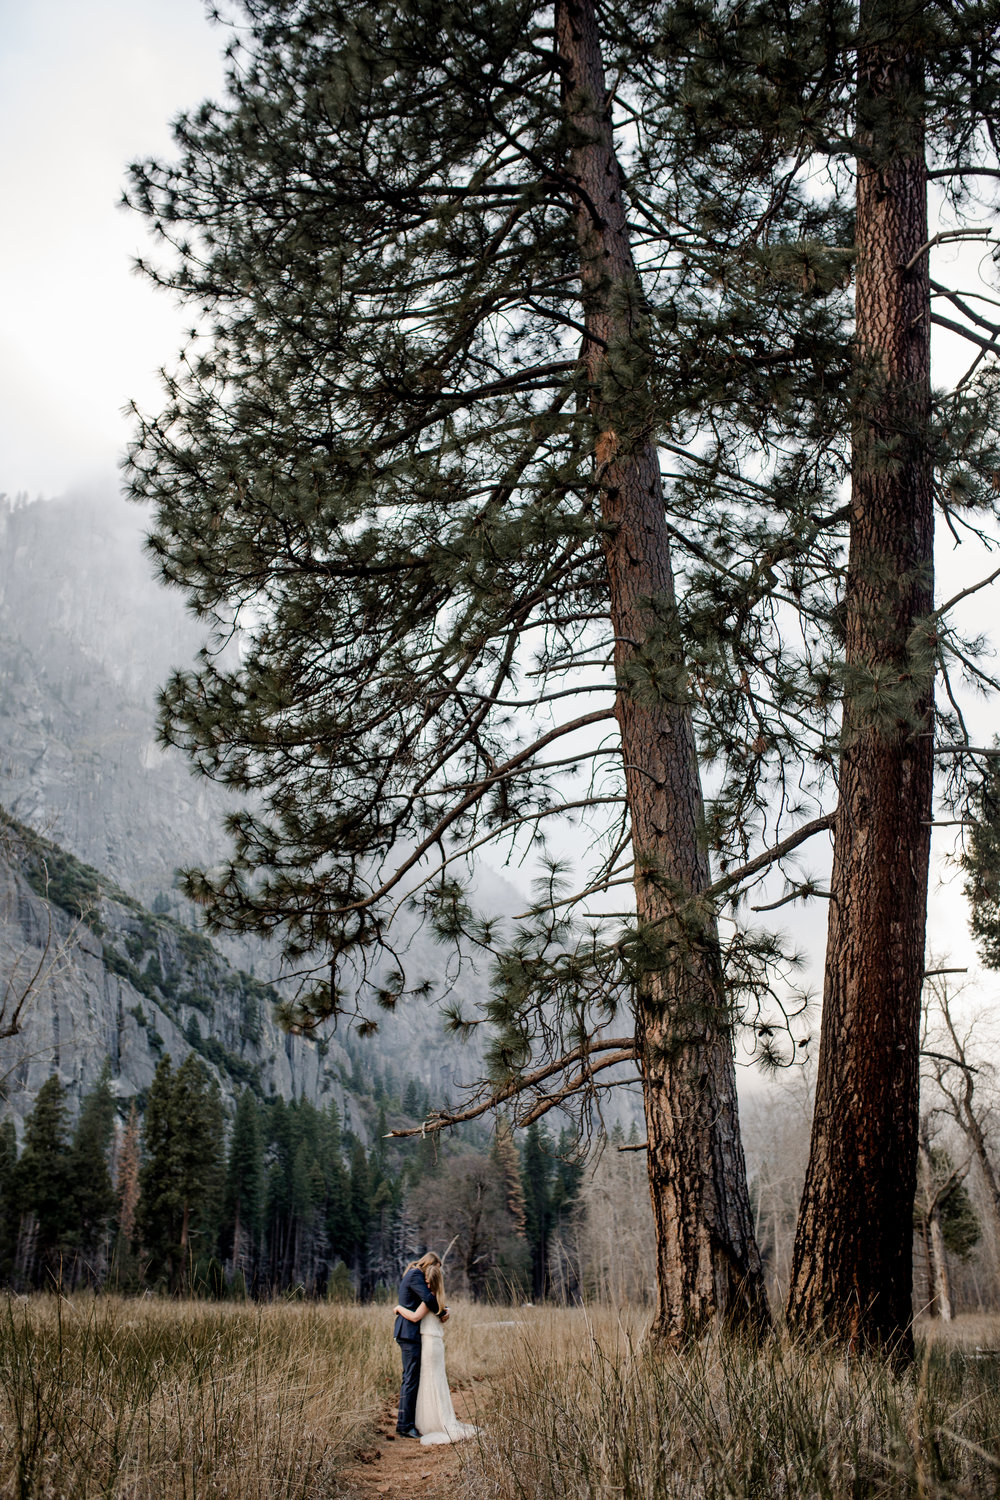 nicole-daacke-photography-yousemite-national-park-elopement-photographer-winter-cloud-moody-elope-inspiration-yosemite-valley-tunnel-view-winter-cloud-fog-weather-wedding-photos-76.jpg